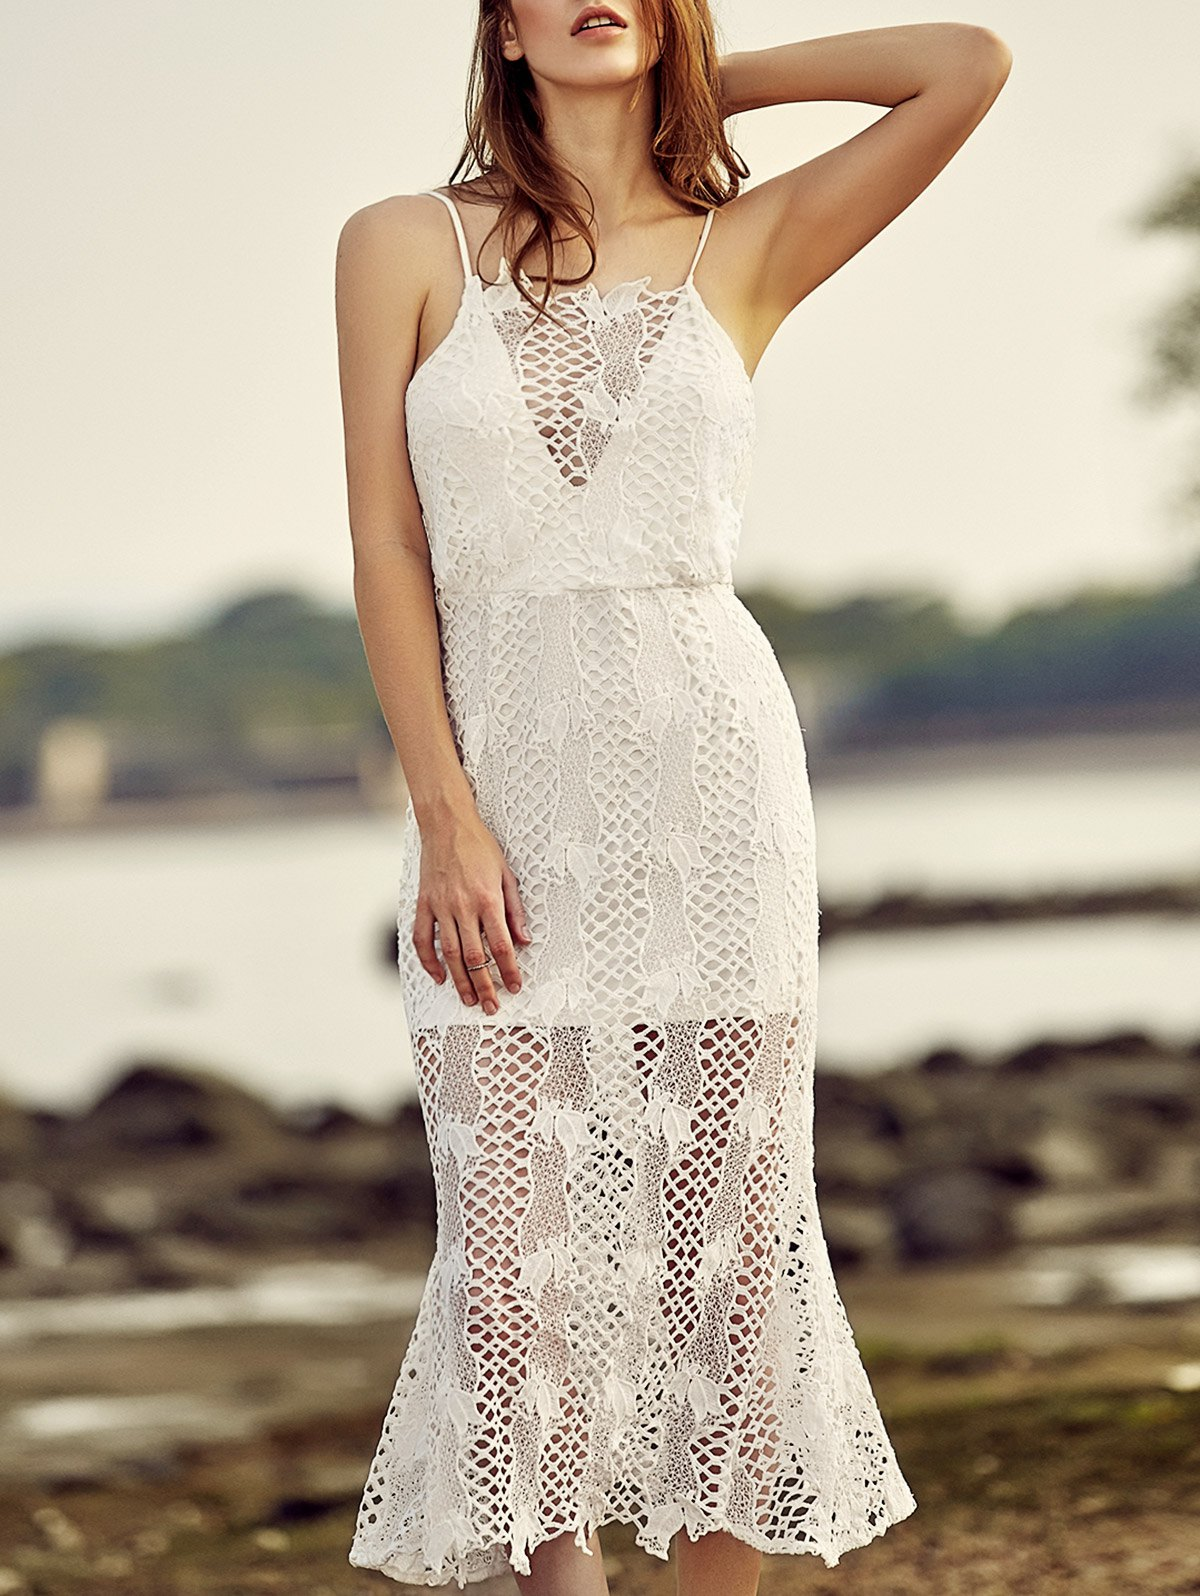 Spaghetti Straps Backless Openwork Lace Dress